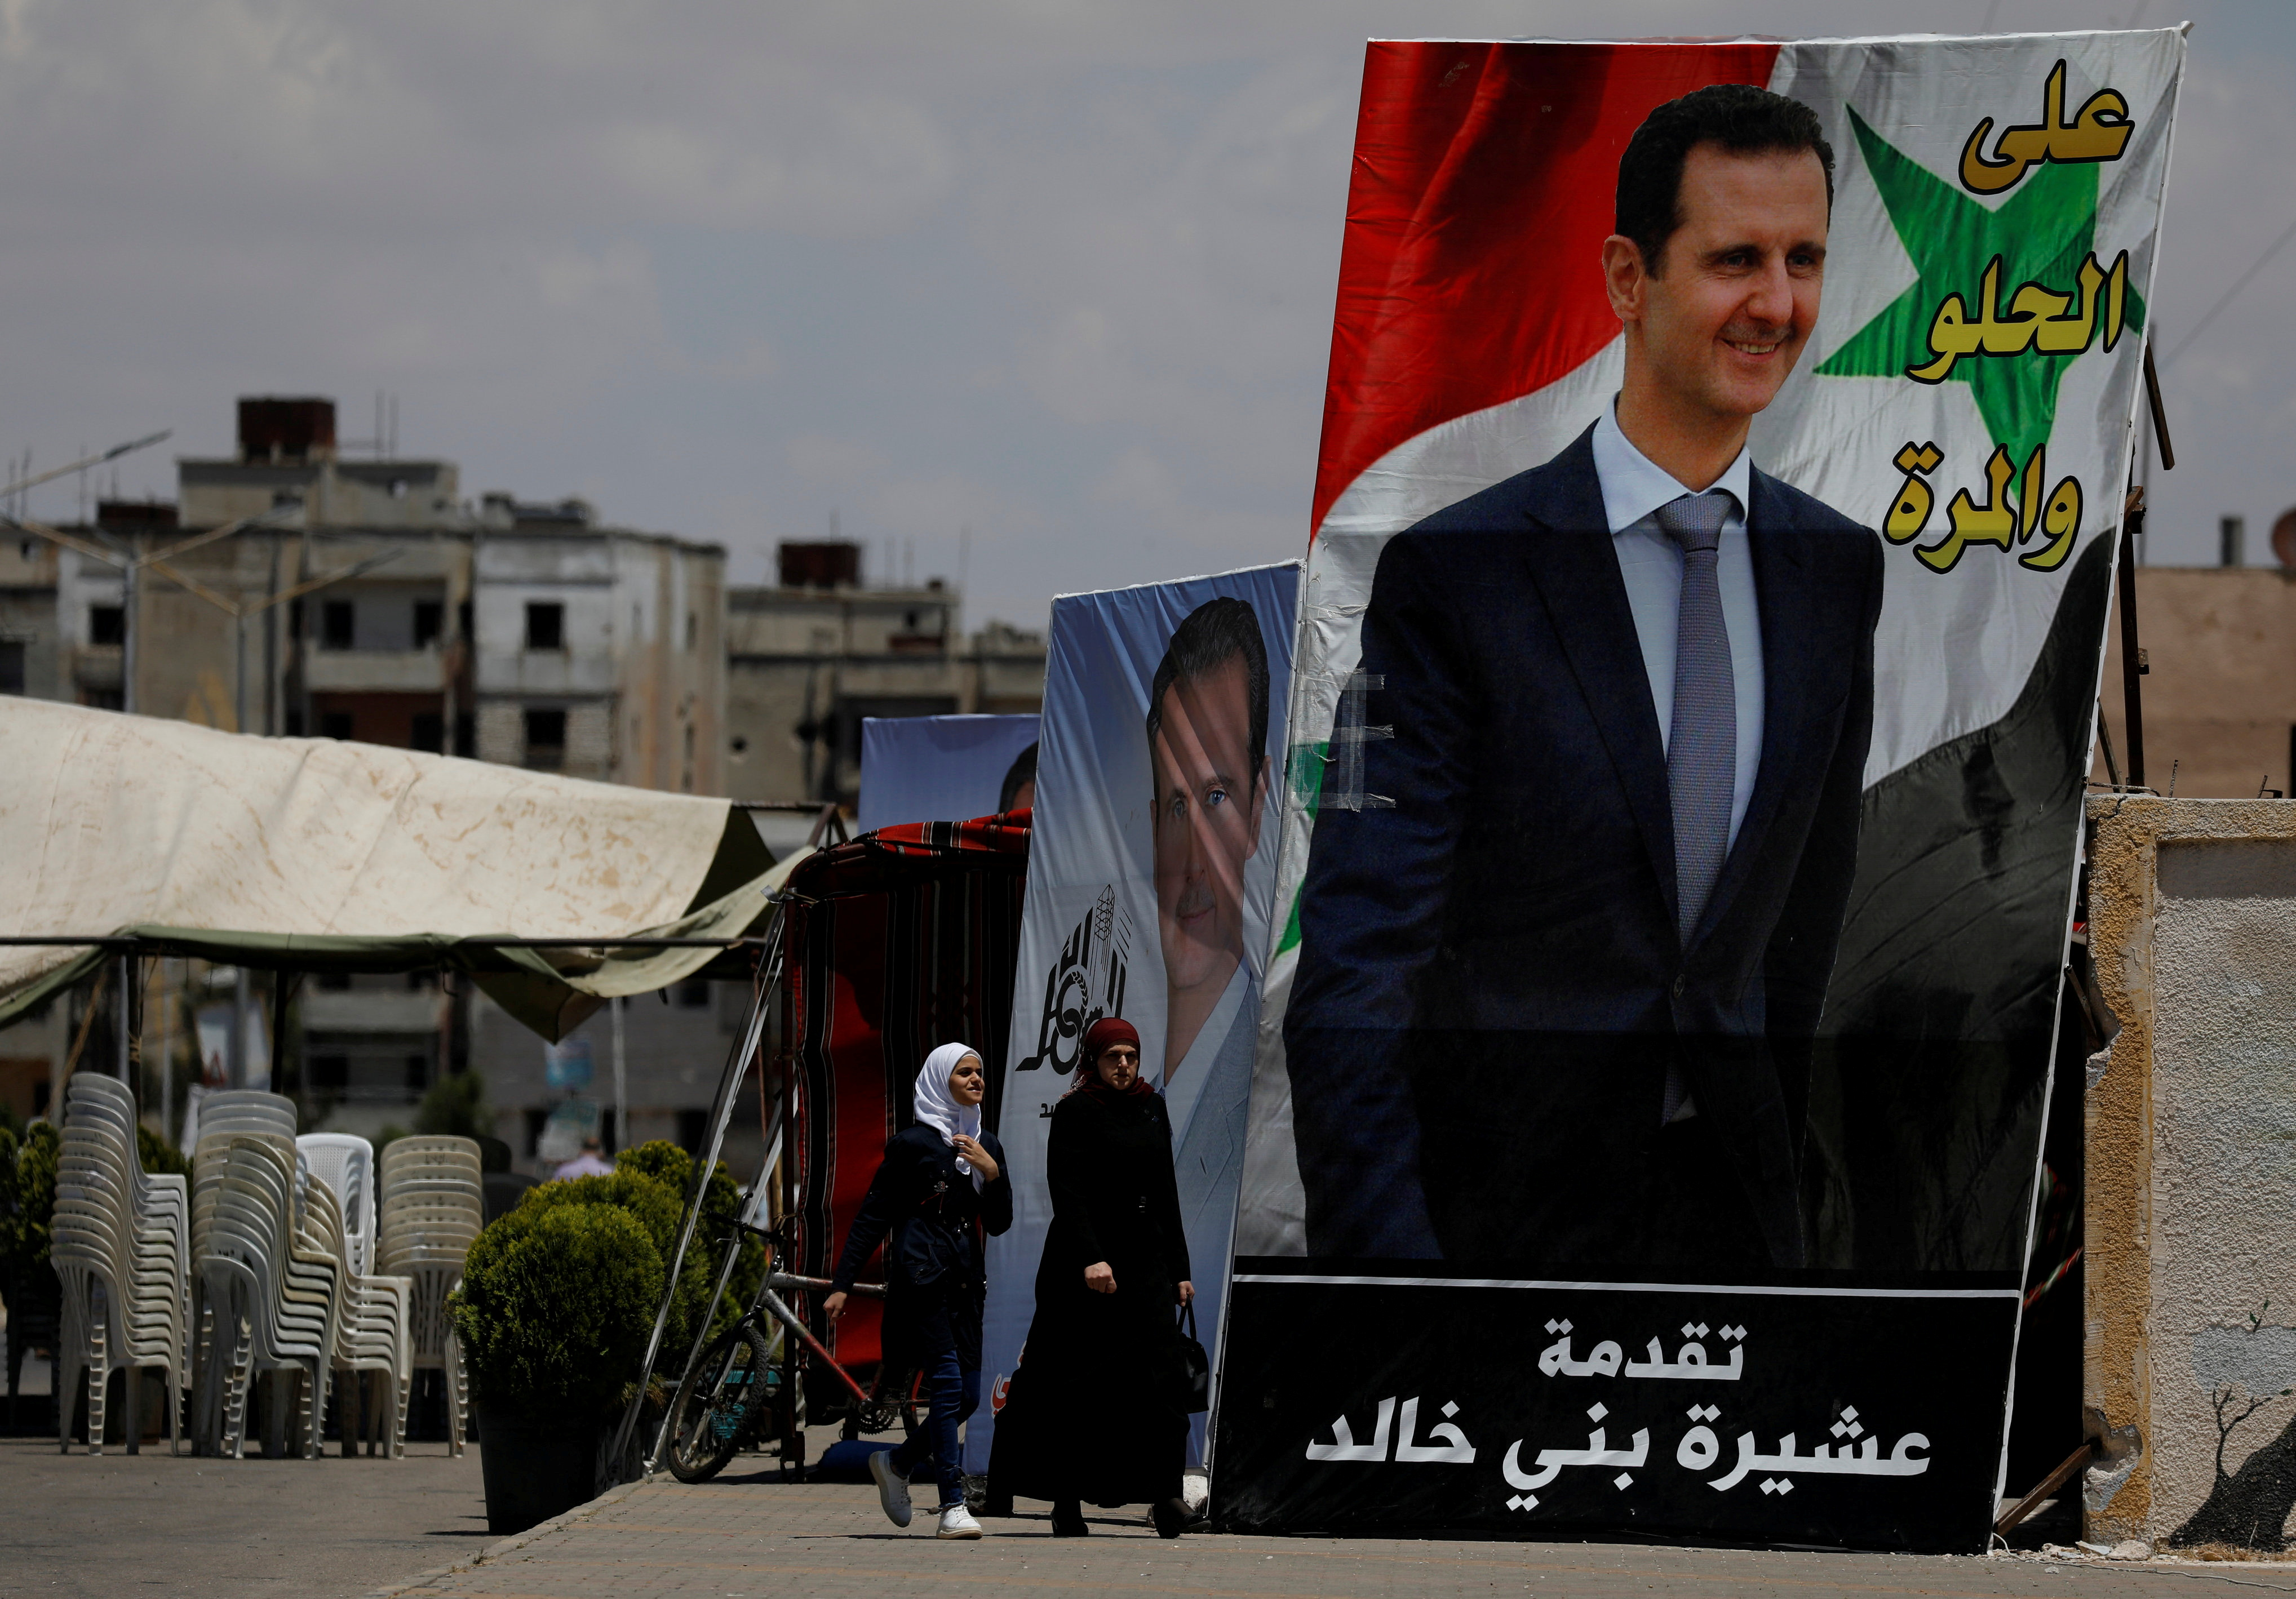 People walk past posters depciting Syria's President Bashar al-Assad, ahead of the May 26 presidential election, in the district of al-Waer in Homs, Syria May 23, 2021.  Picture taken May 23, 2021. REUTERS/Omar Sanadiki/File Photo